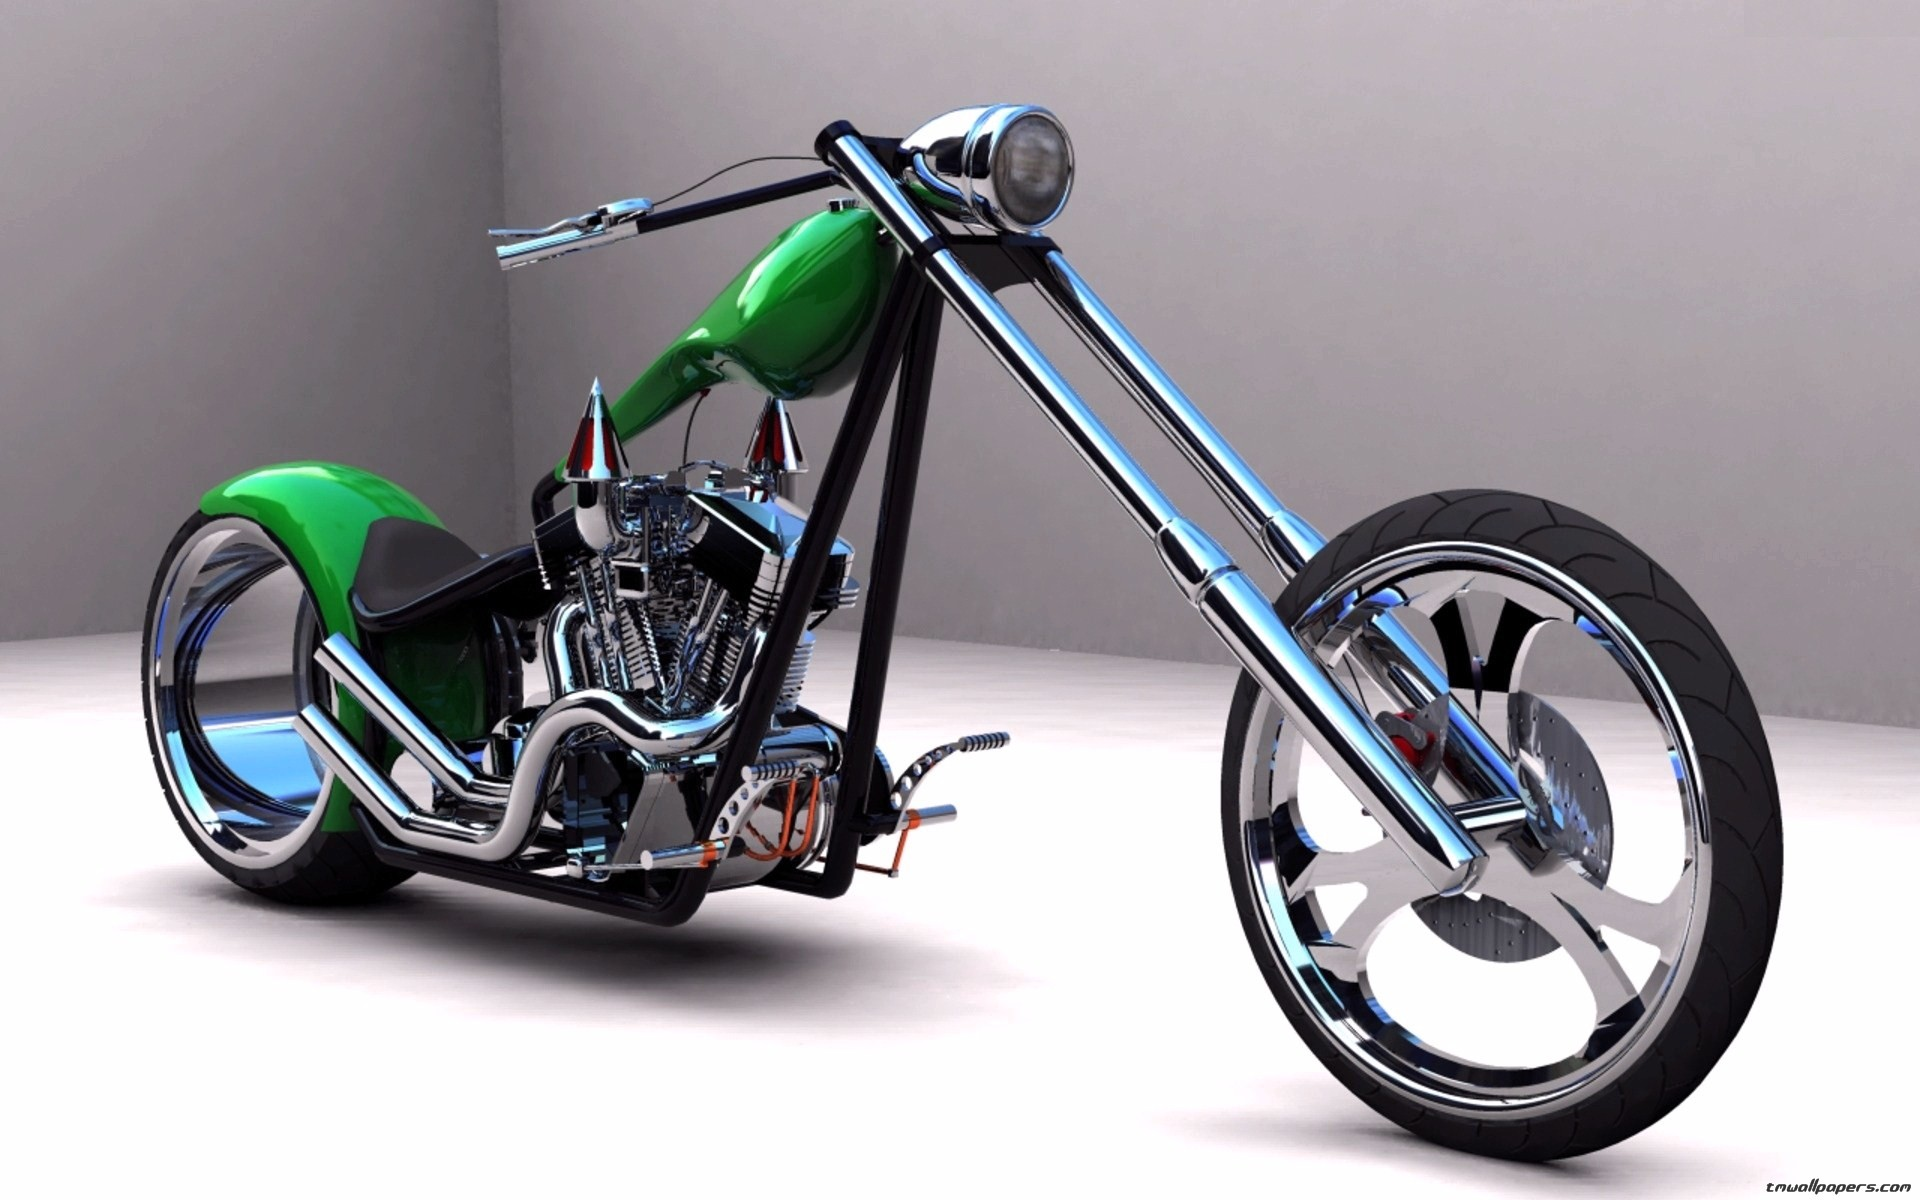 1920x1200 Harley Davidson Chopper Wallpaper #2157 Wallpaper computer | best .